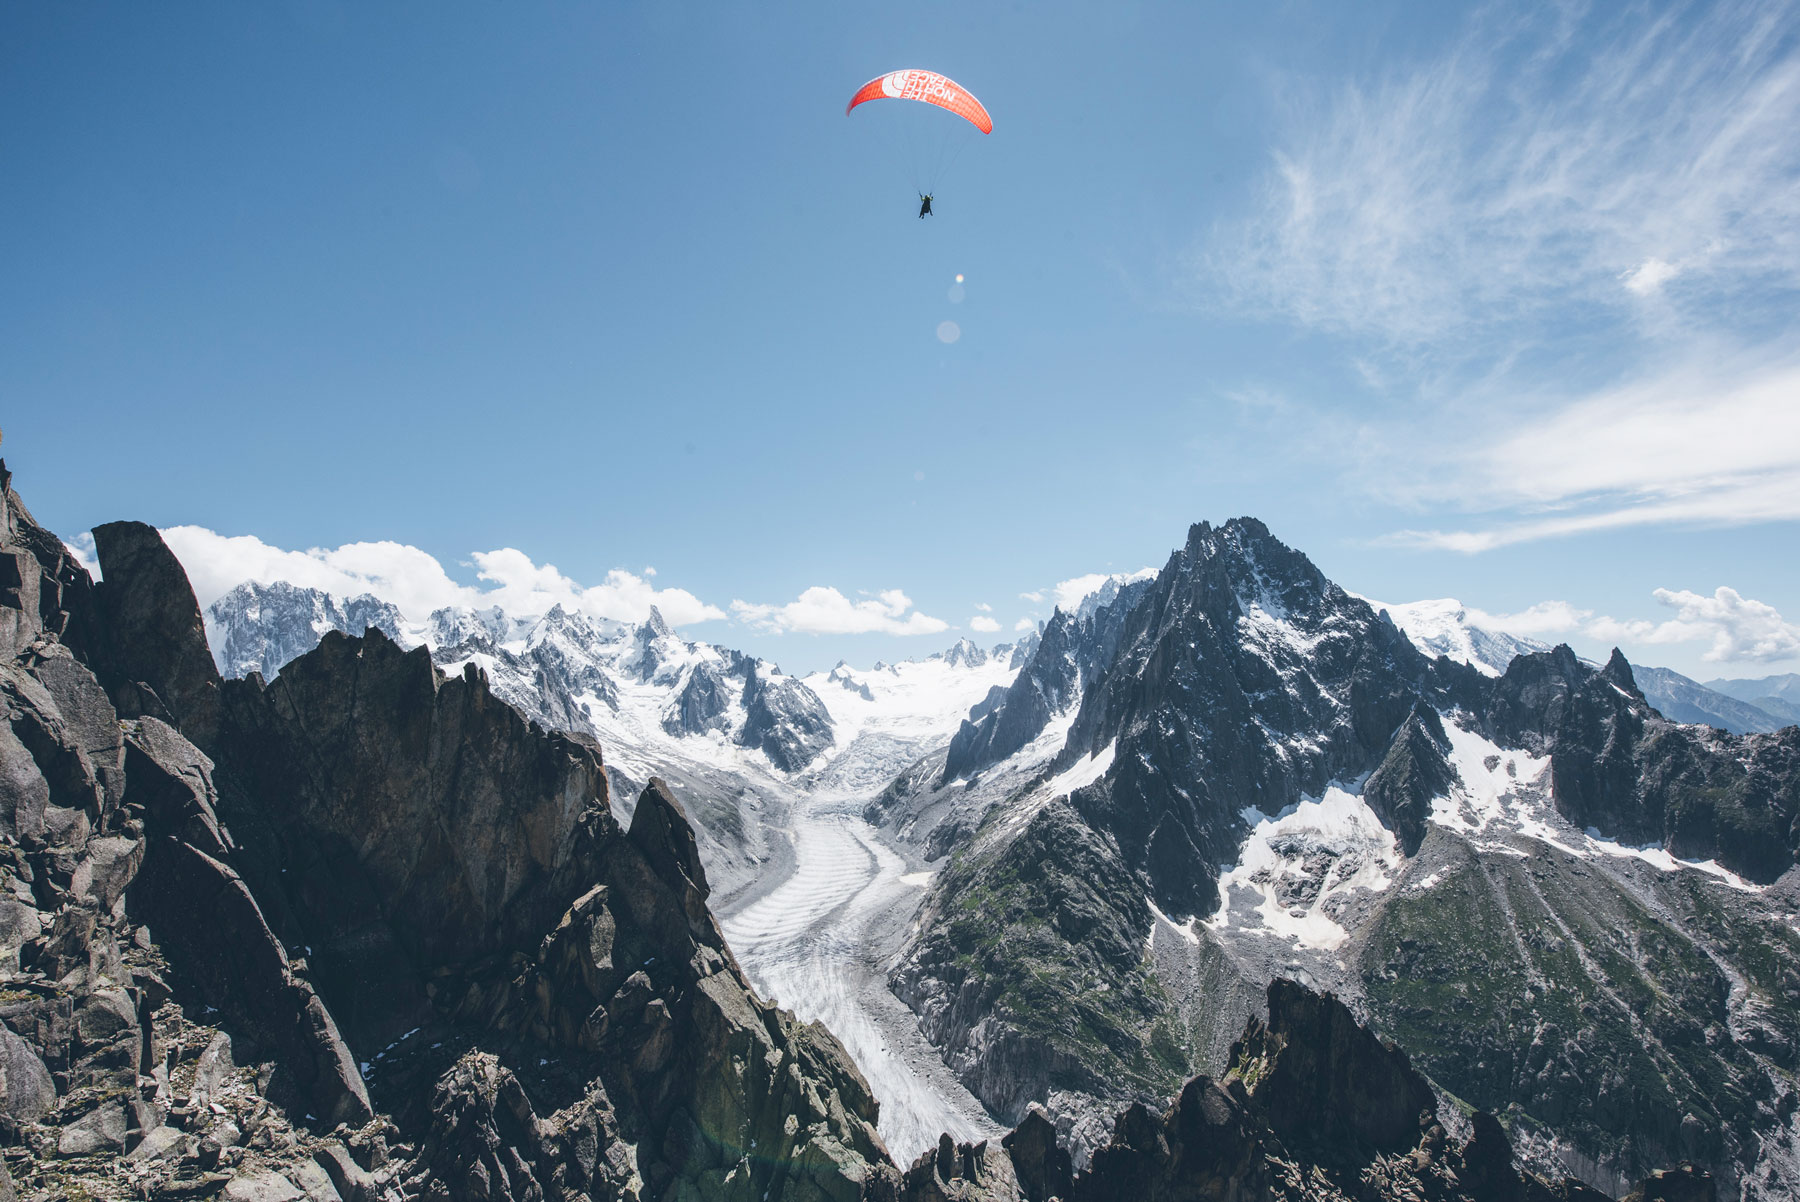 Kailash parapente, The North Face, Chamonix